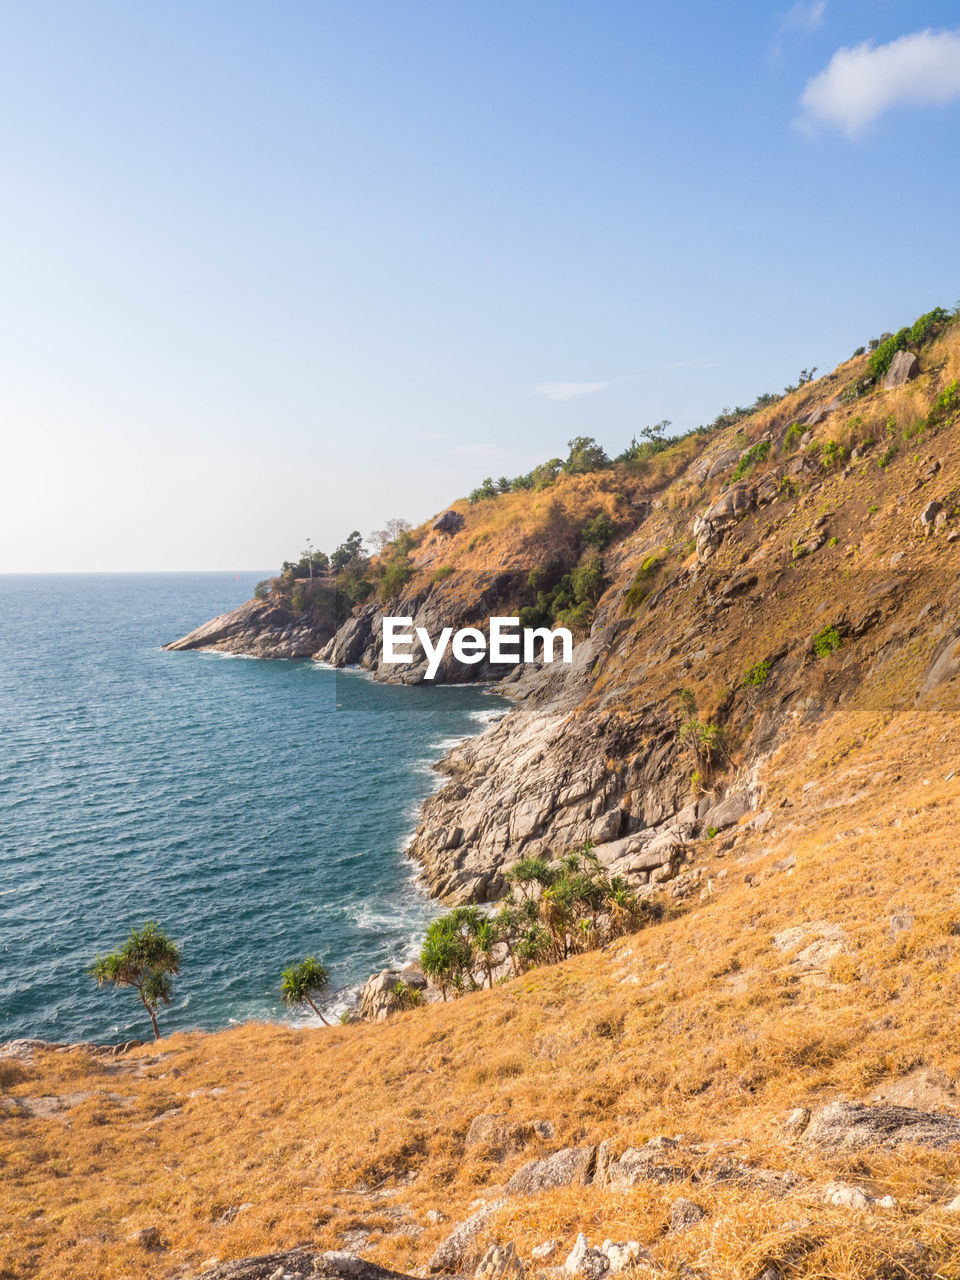 sea, sky, water, land, scenics - nature, beauty in nature, beach, nature, tranquility, tranquil scene, clear sky, no people, cliff, rock, day, copy space, horizon, mountain, rock - object, outdoors, horizon over water, rocky coastline